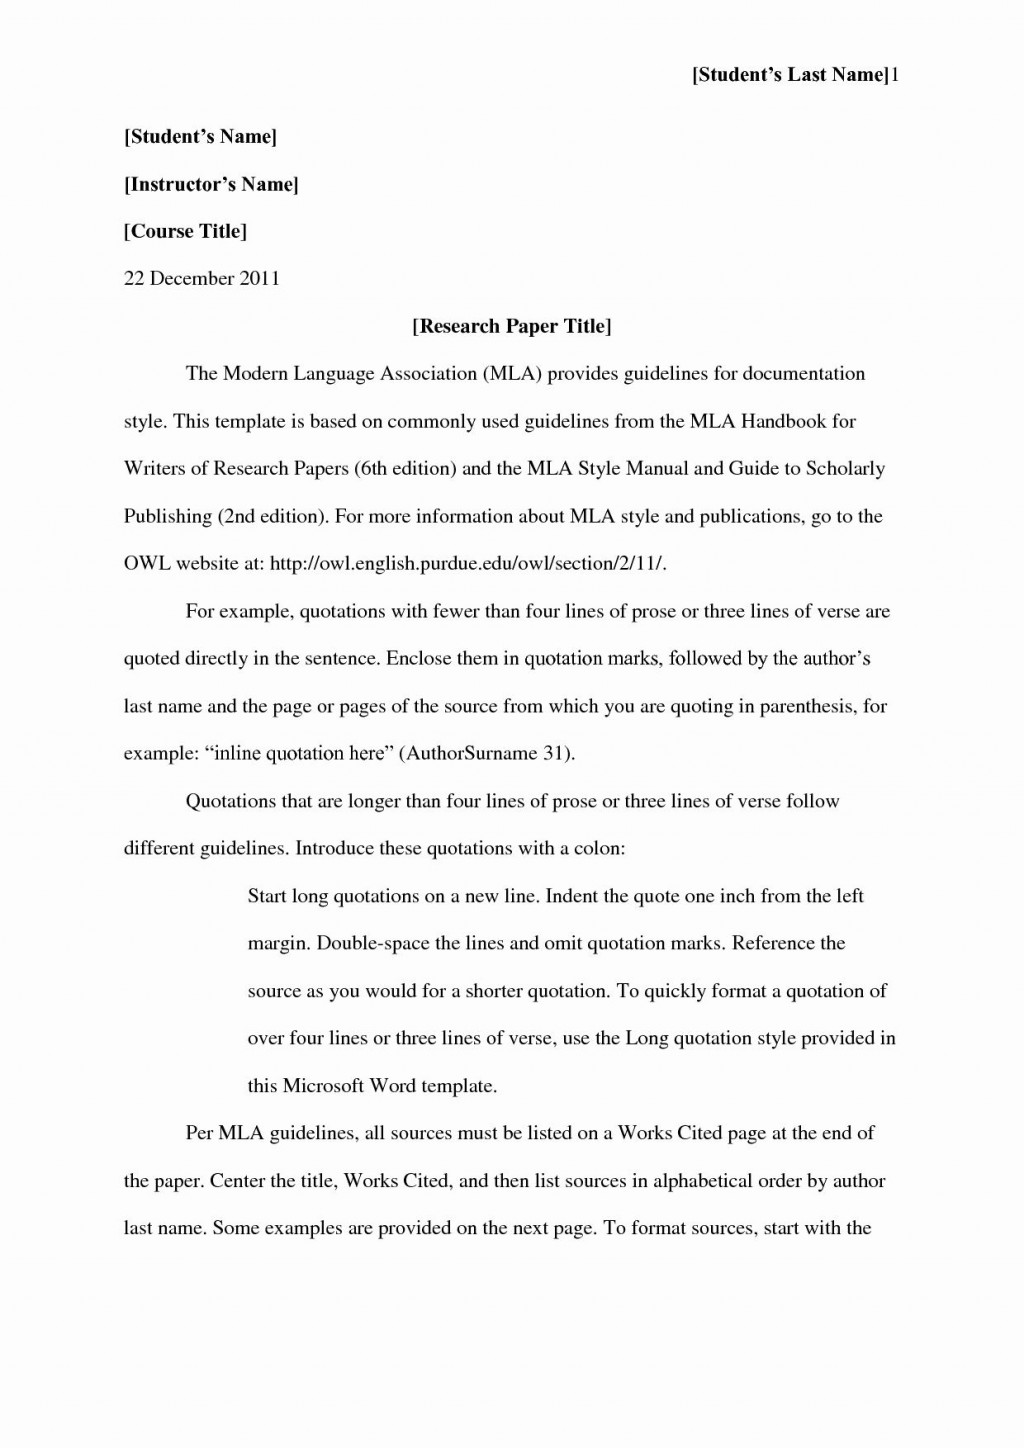 024 Mla Title Page Template Awesome Format Works Cited Scarlet Letter Best Of Apa Style Essay Example Research Paper Amazing With Large